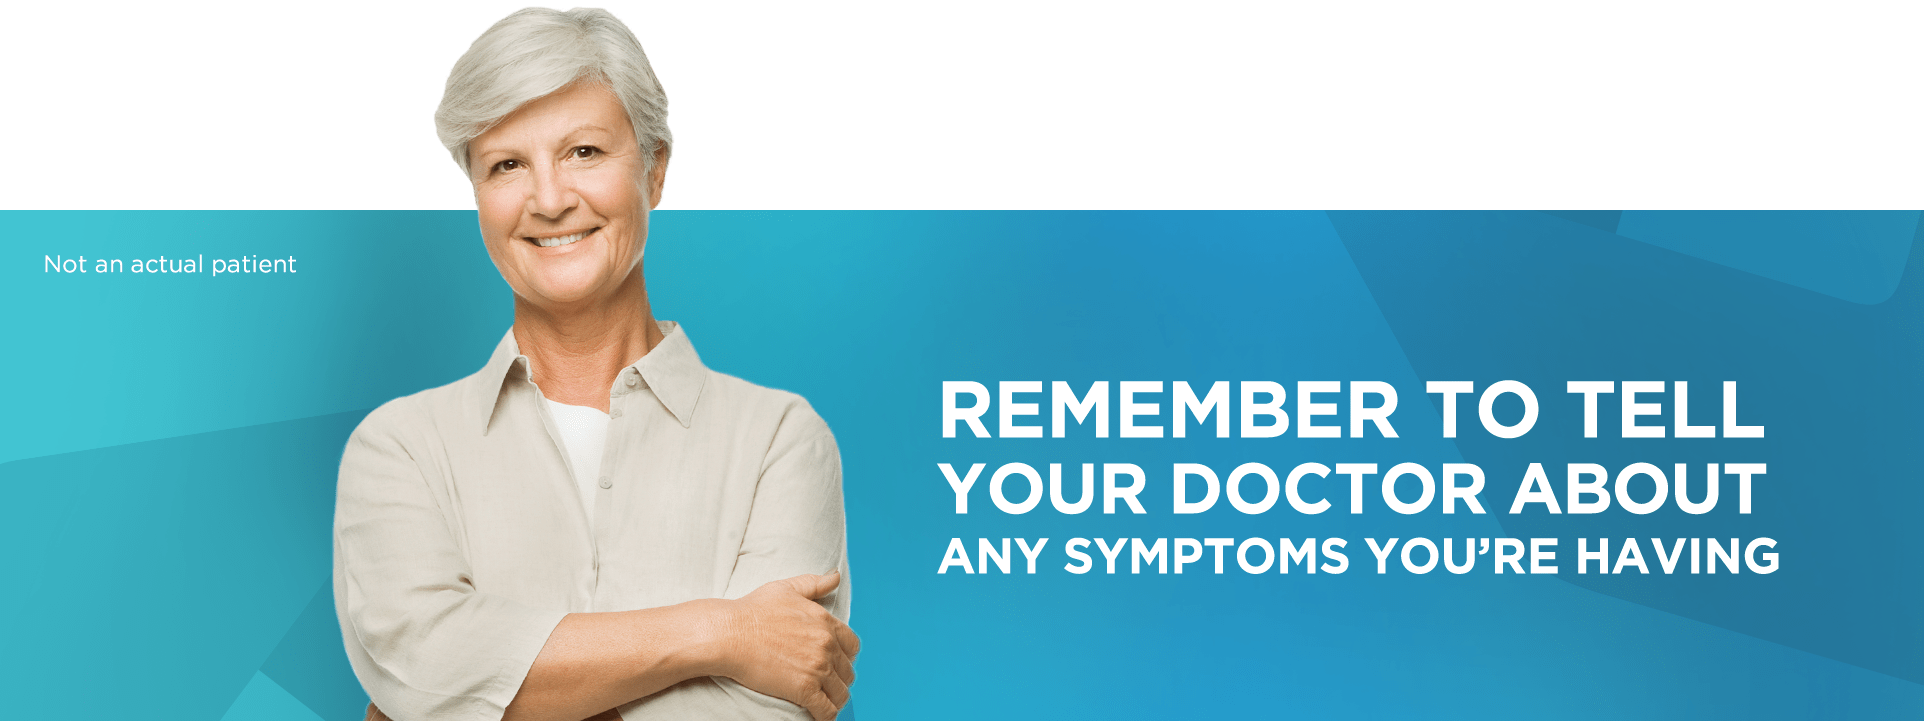 Remember to tell your doctor about any symptoms you're having